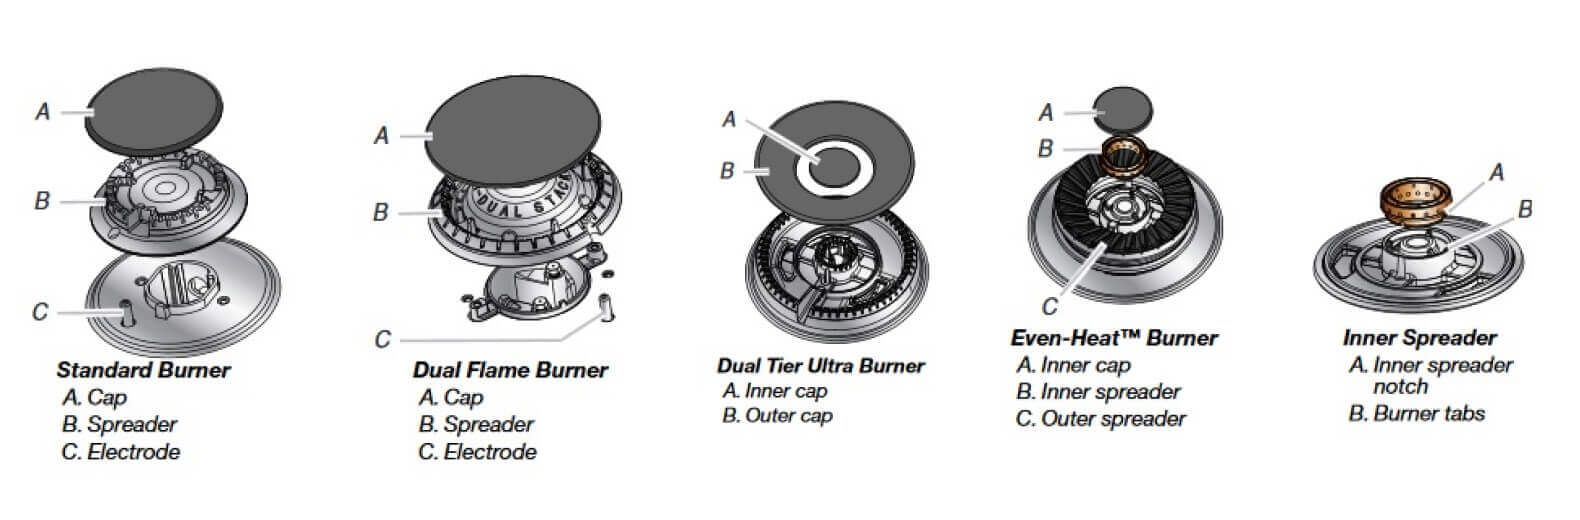 Range burner port cleaning illustration